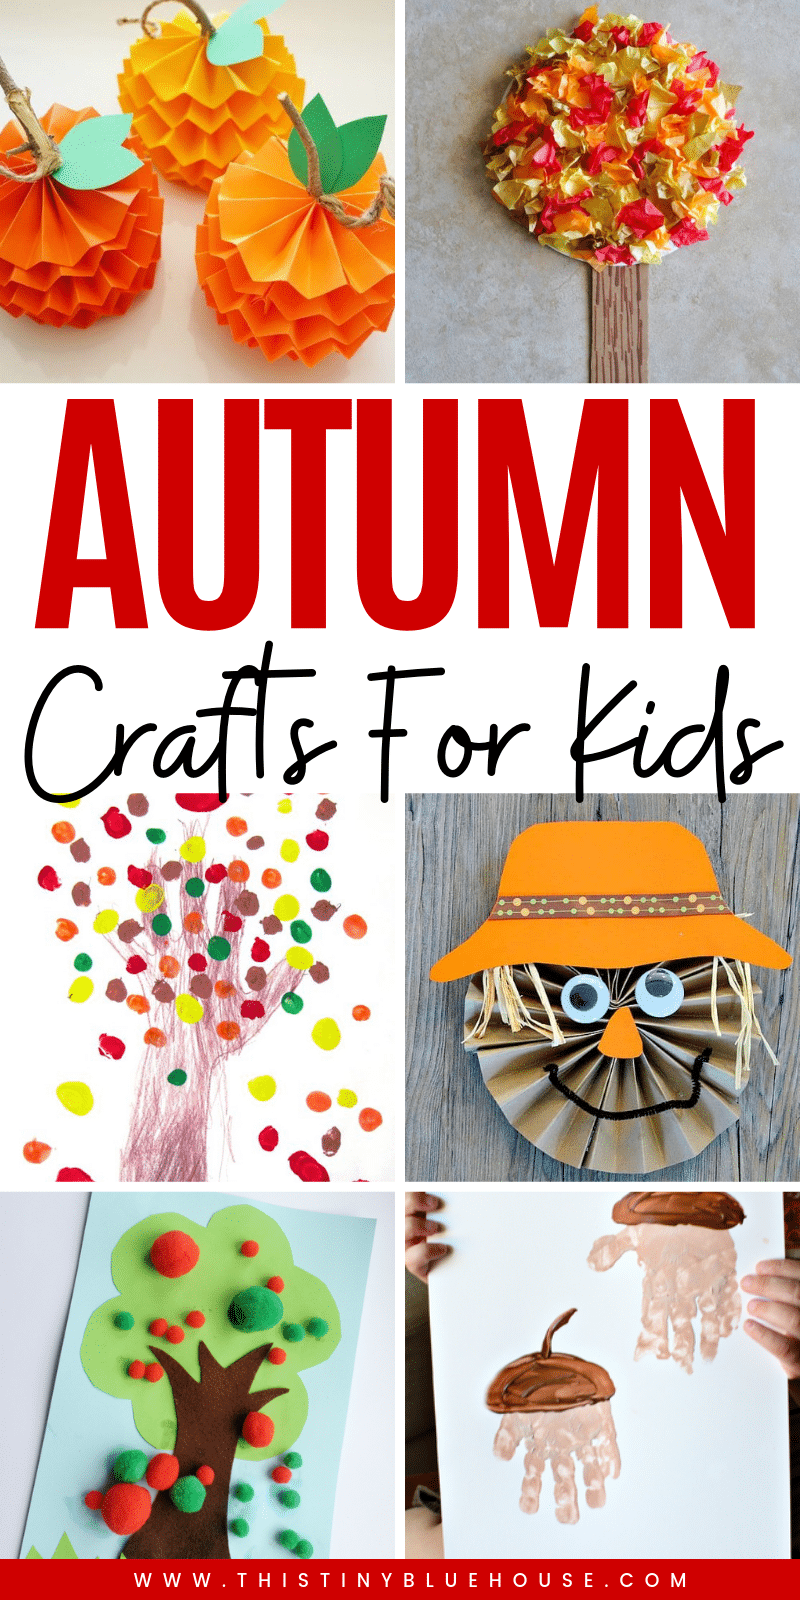 35+ Crazy Easy Fall Inspired Crafts For Kids! Get creative with these adorable and super easy fall inspired crafts for kids! #fallcrafts #fallcraftsforkids #fallcraftsfortoddlers #fallcraftsforpreschoolers